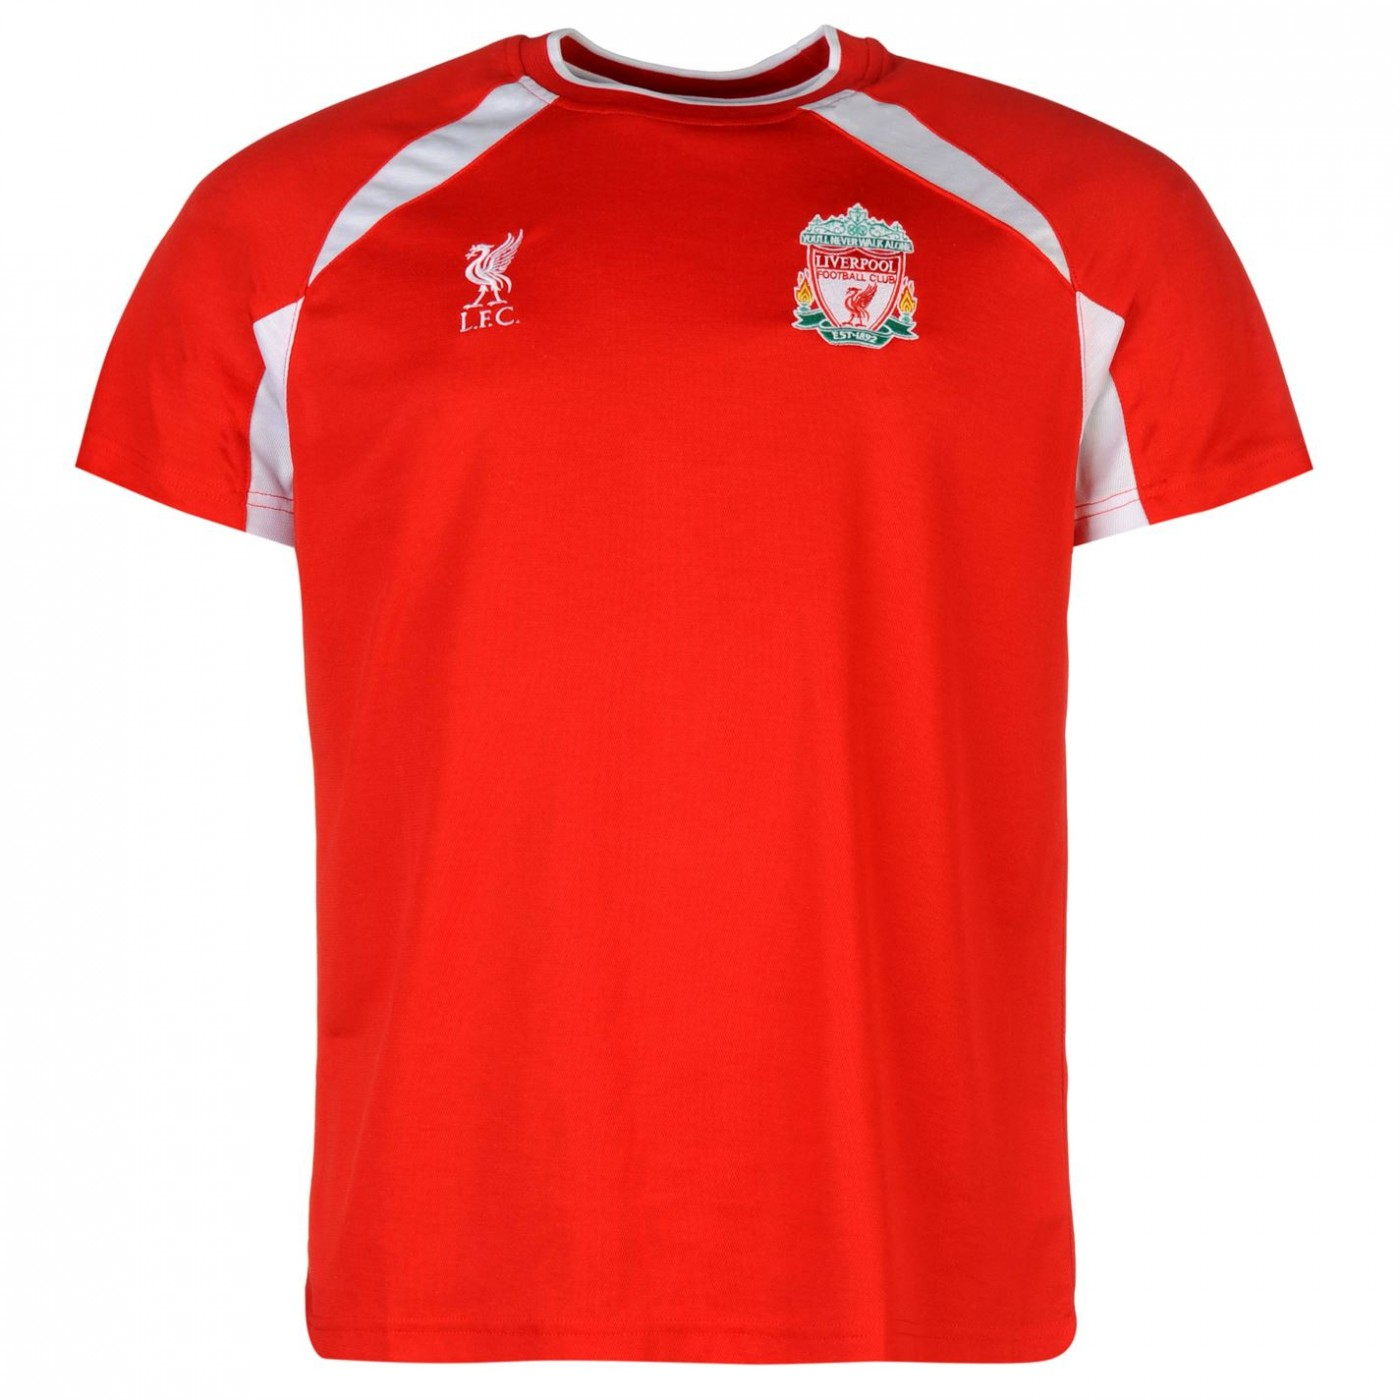 LFC Source Lab red